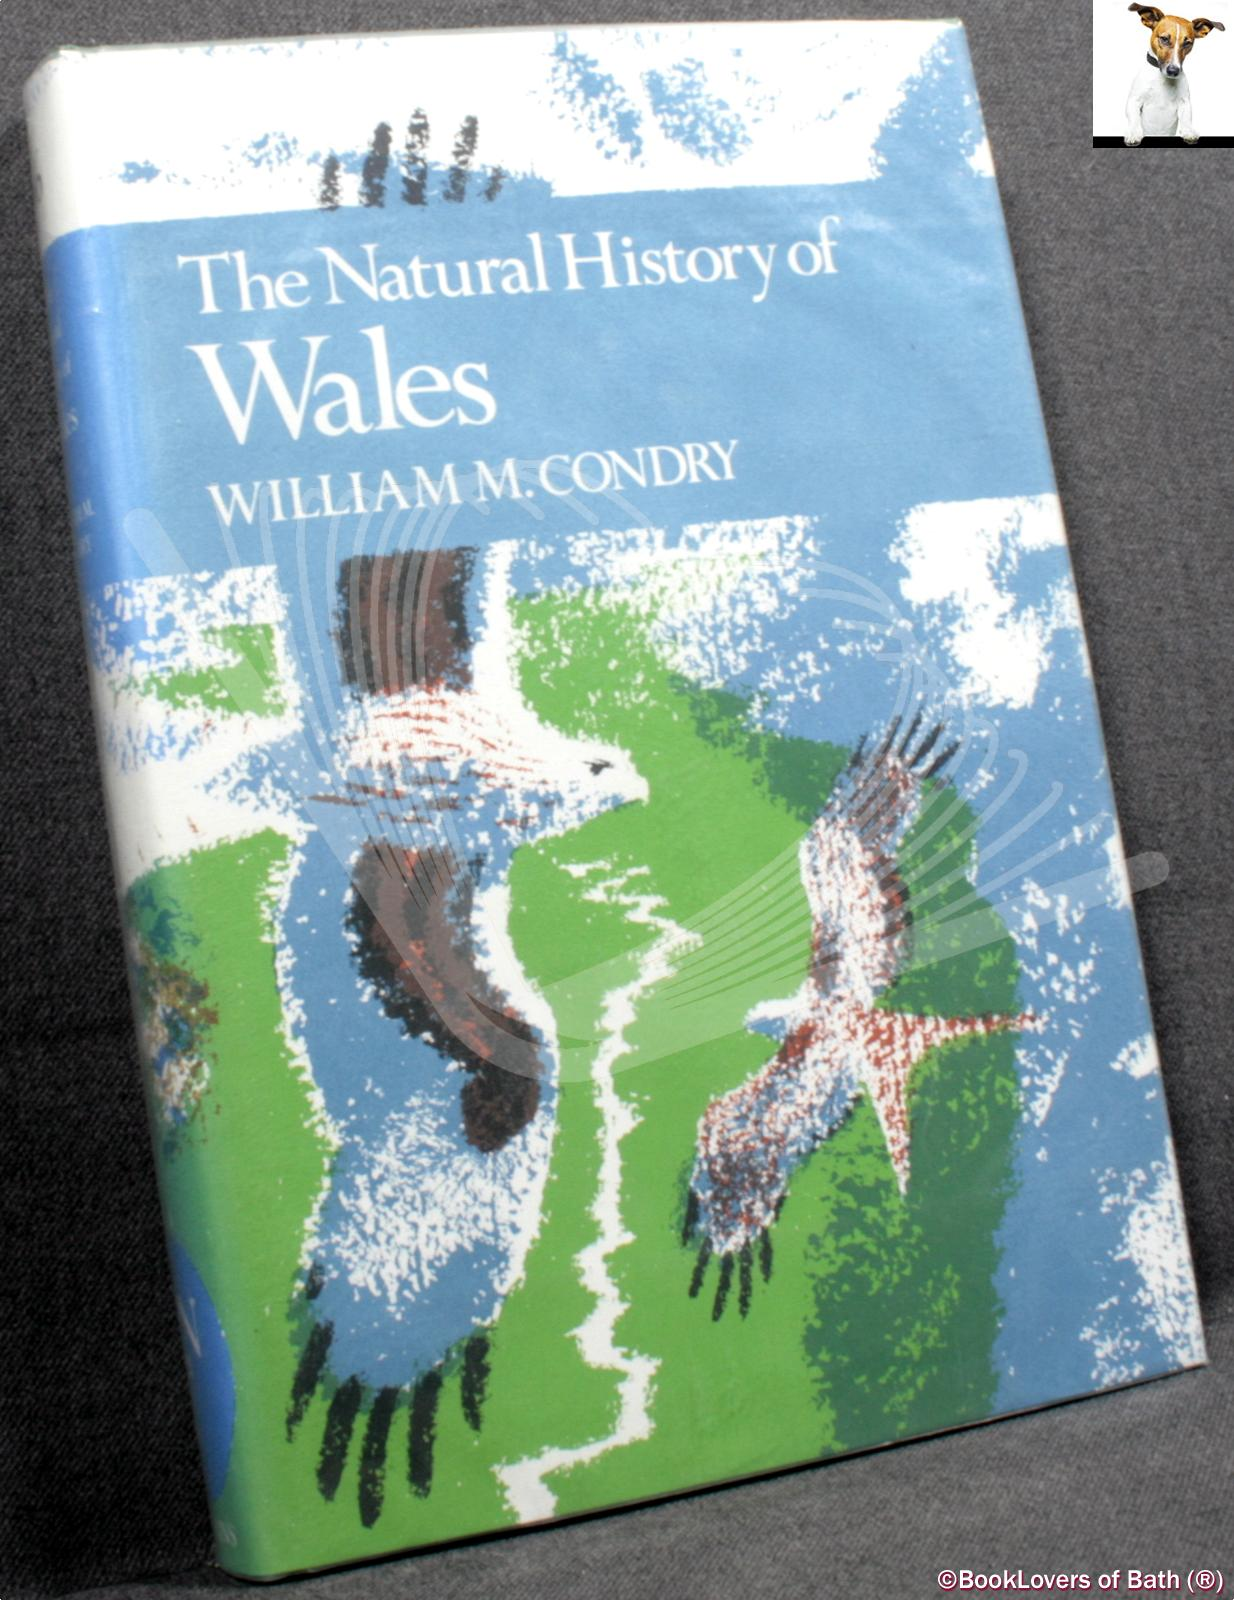 The Natural History of Wales - William M. Condry